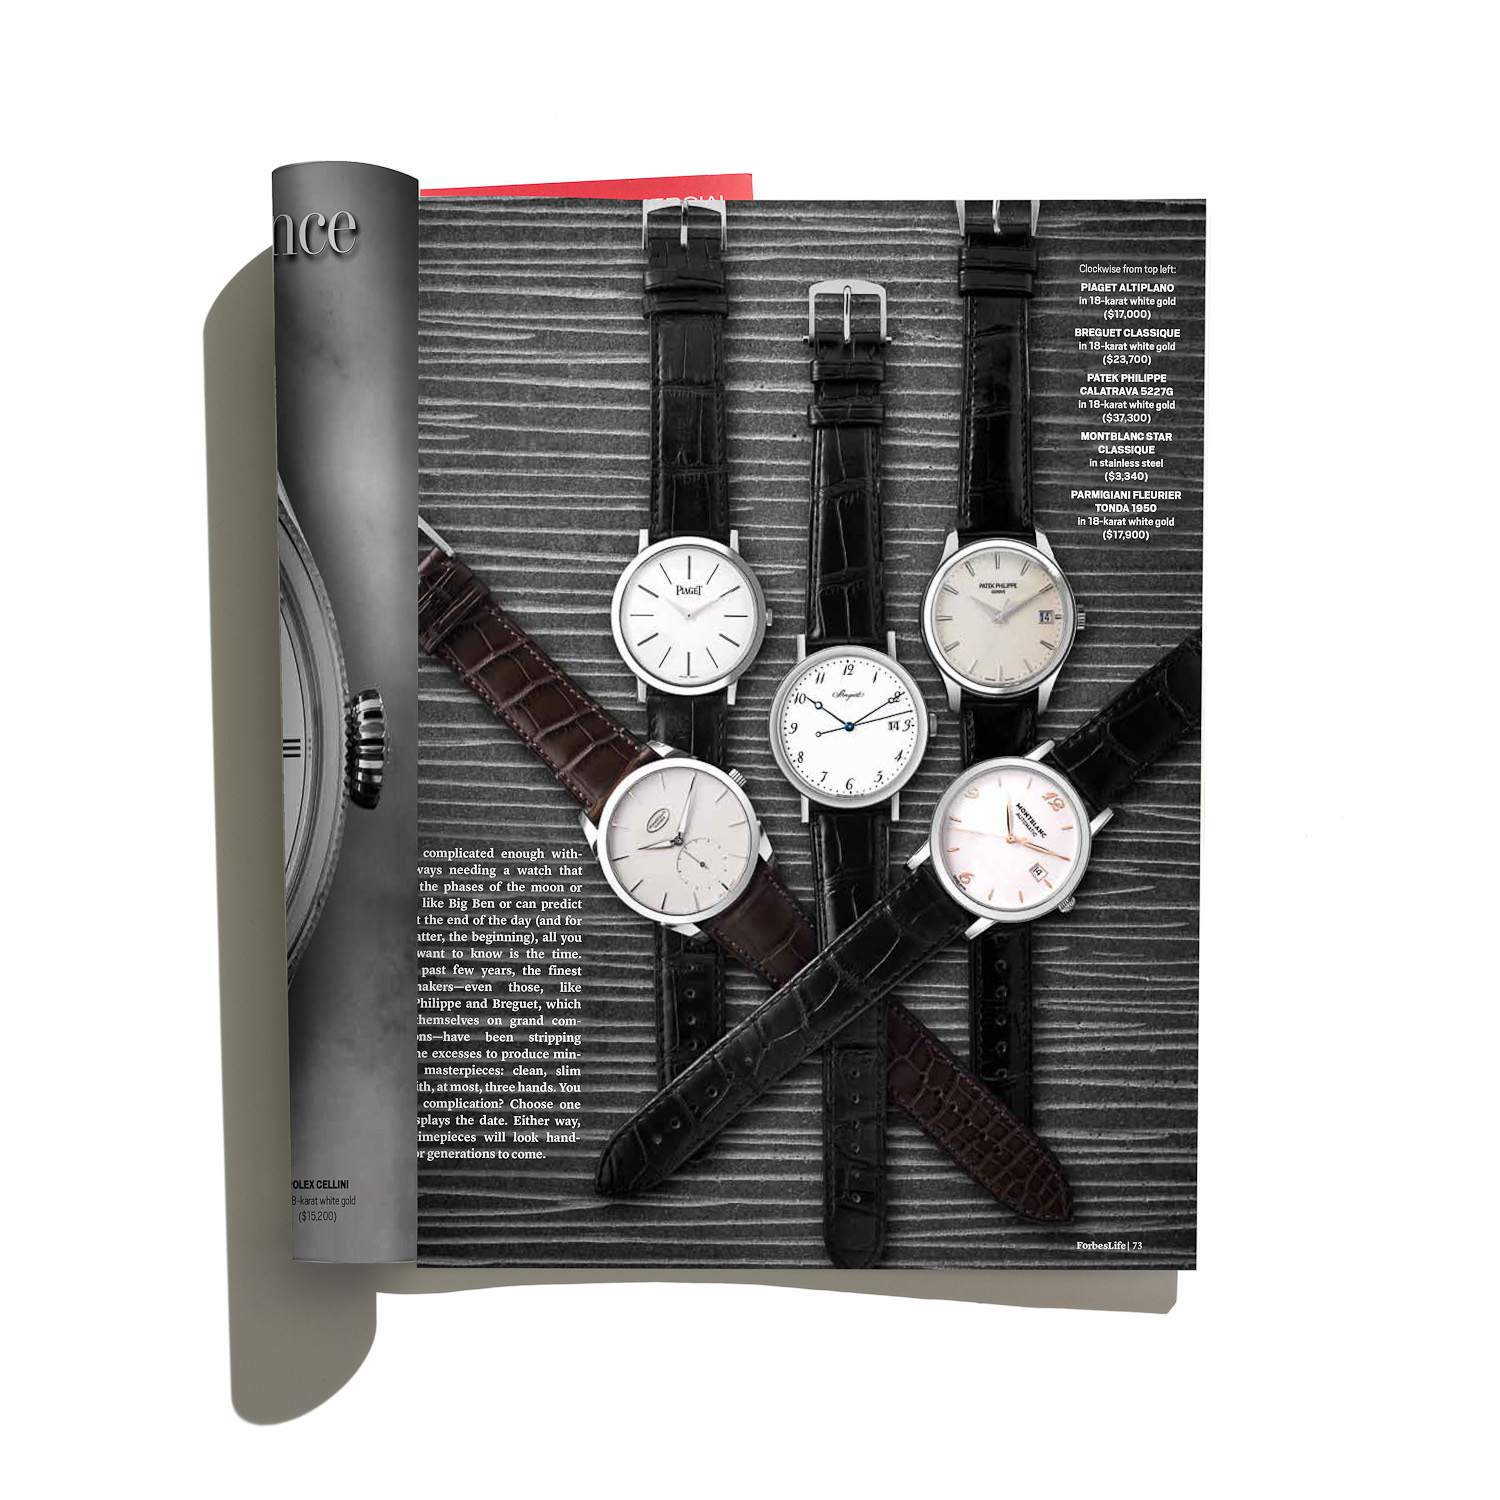 David_Arky_Forbes Life Watches-2.jpg